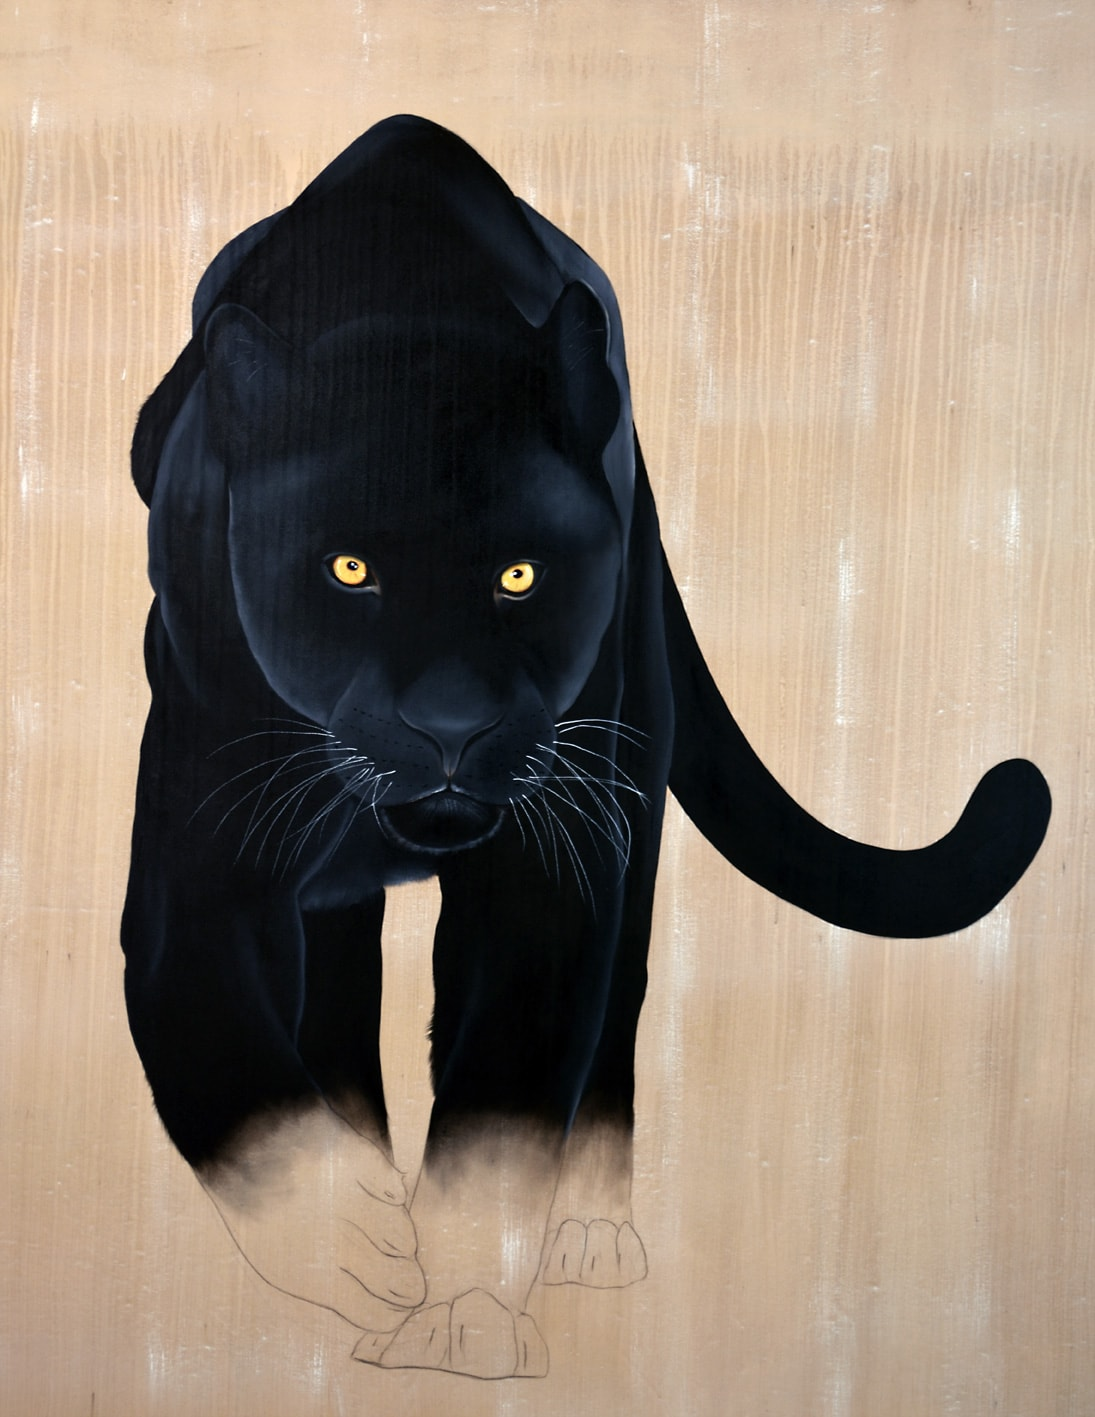 Projet Decaux black-panther-java-leopard-threatened-endangered-extinction Thierry Bisch Contemporary painter animals painting art  nature biodiversity conservation